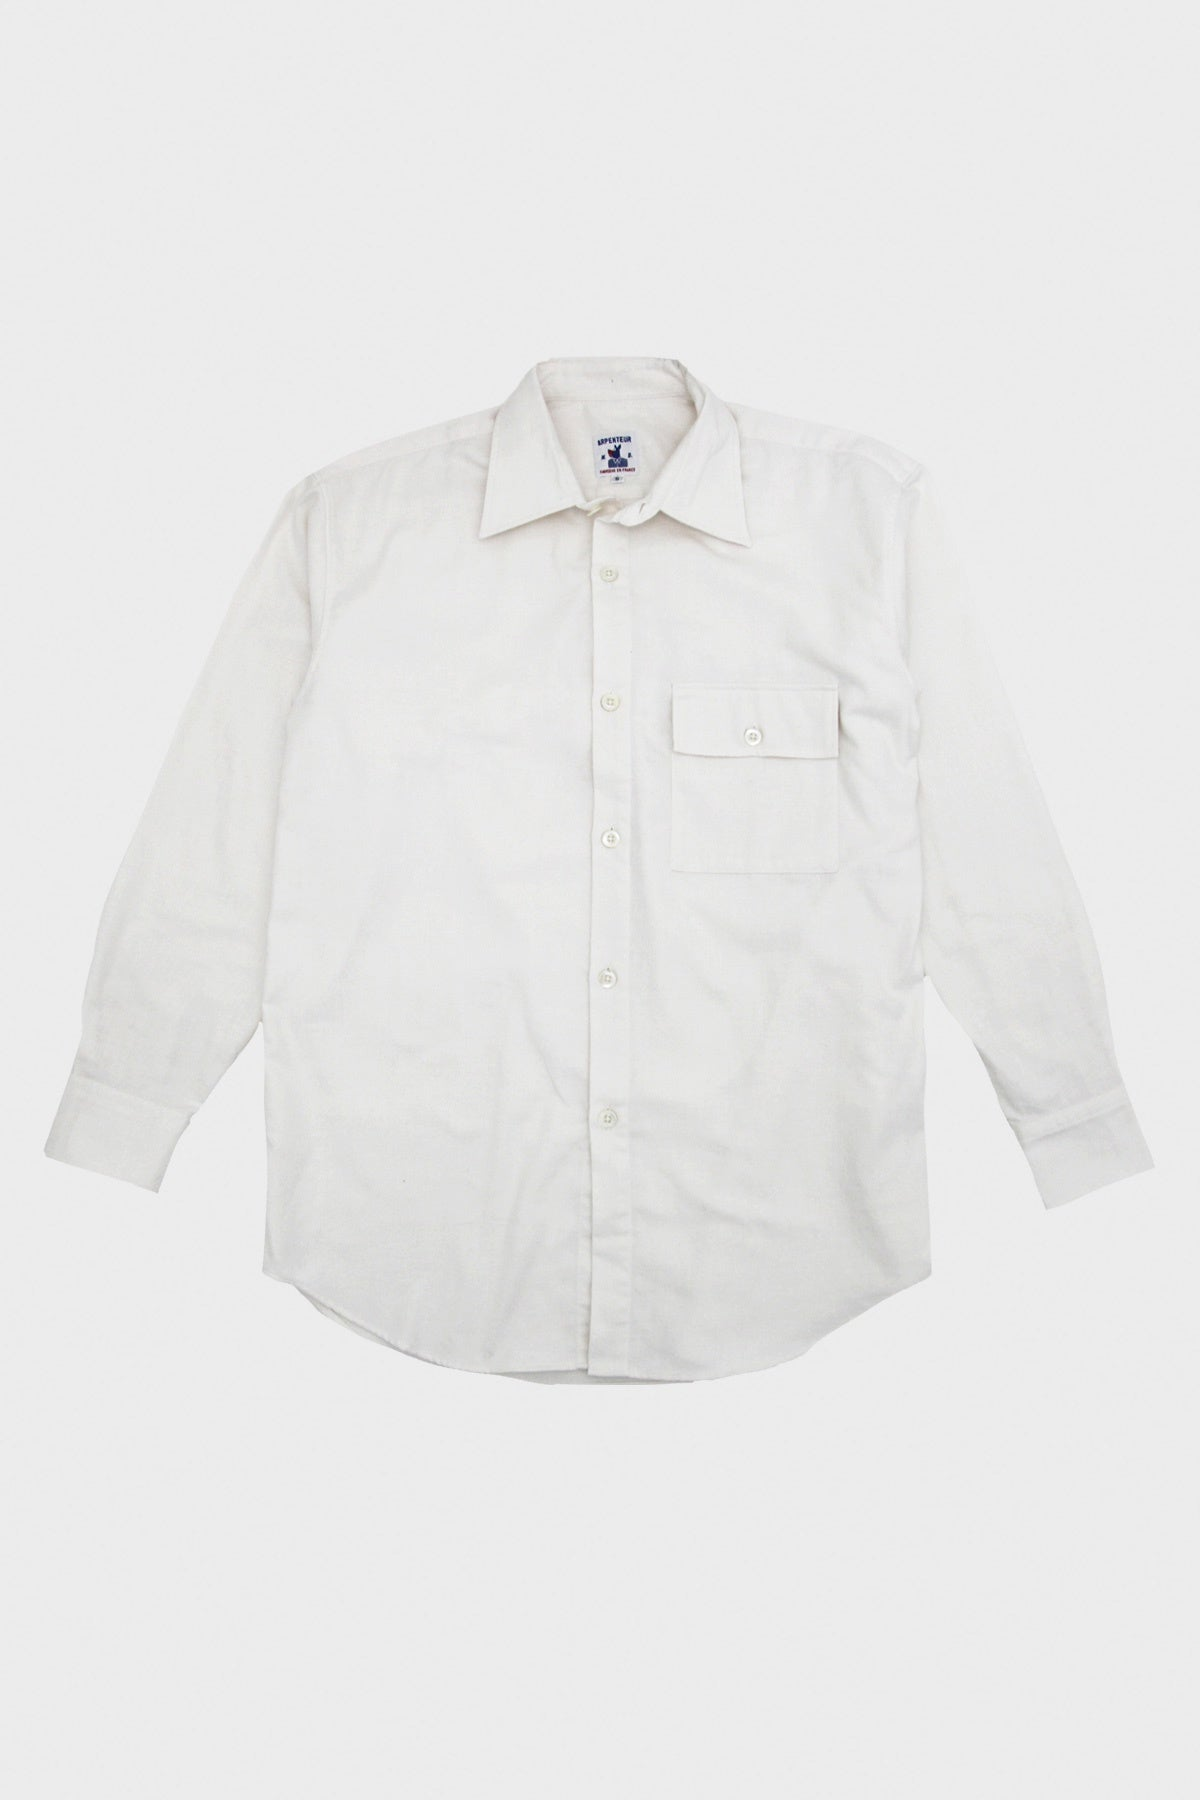 Arpenteur - Doris Shirt - White Cotton Flannel - Canoe Club